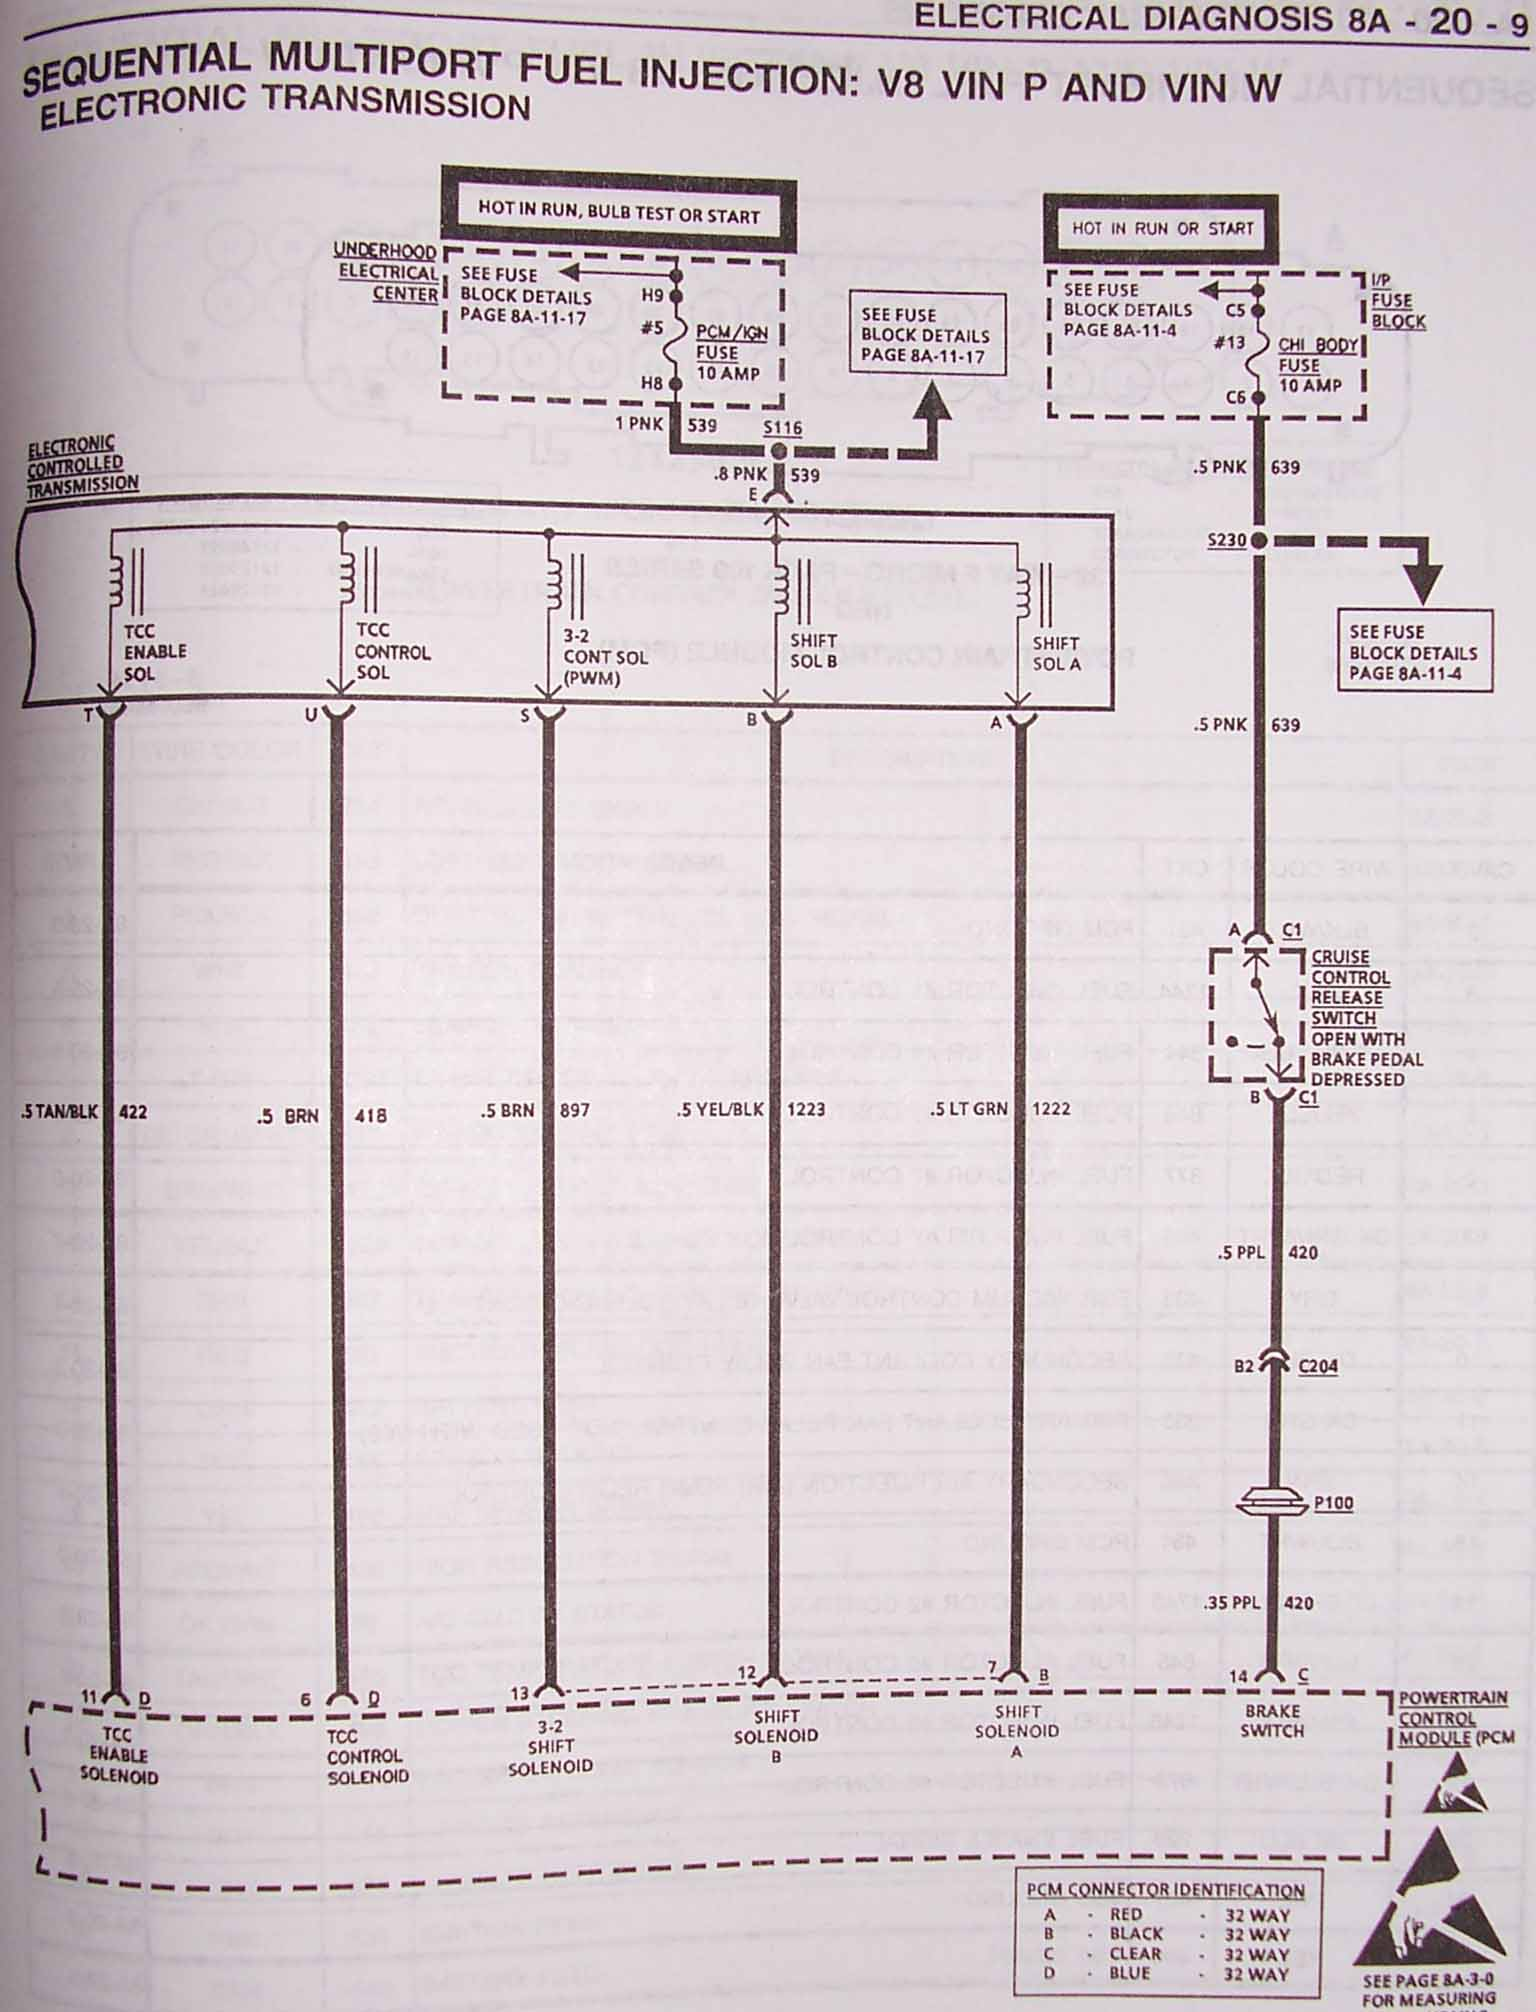 hight resolution of xcrs 500m wiring diagram 24 wiring diagram images 1996 impala ss radio wiring diagram 96 impala